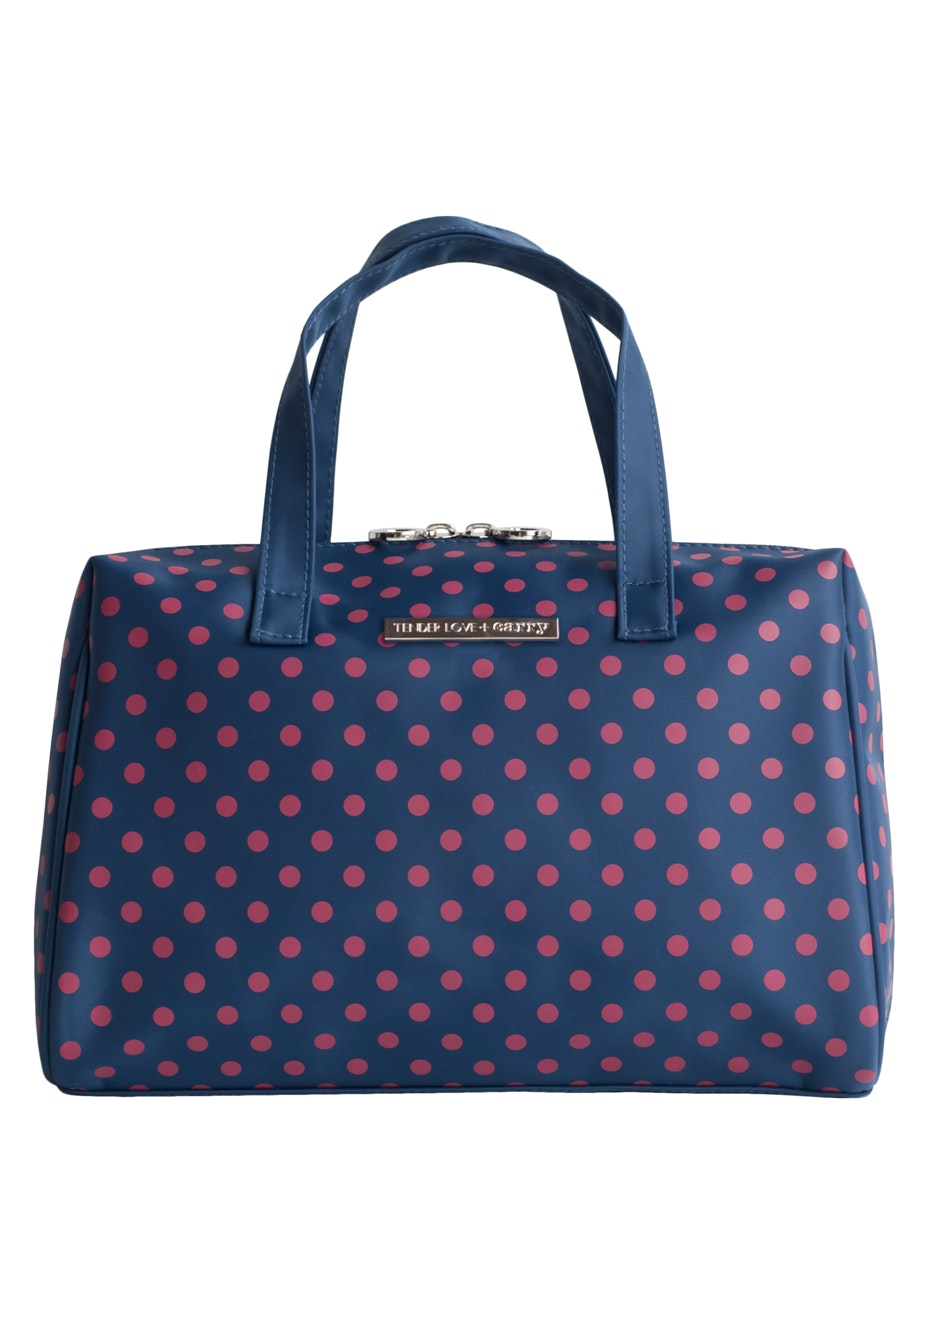 TL+C - Blue Jewel Bowling Bag - Navy/Pink